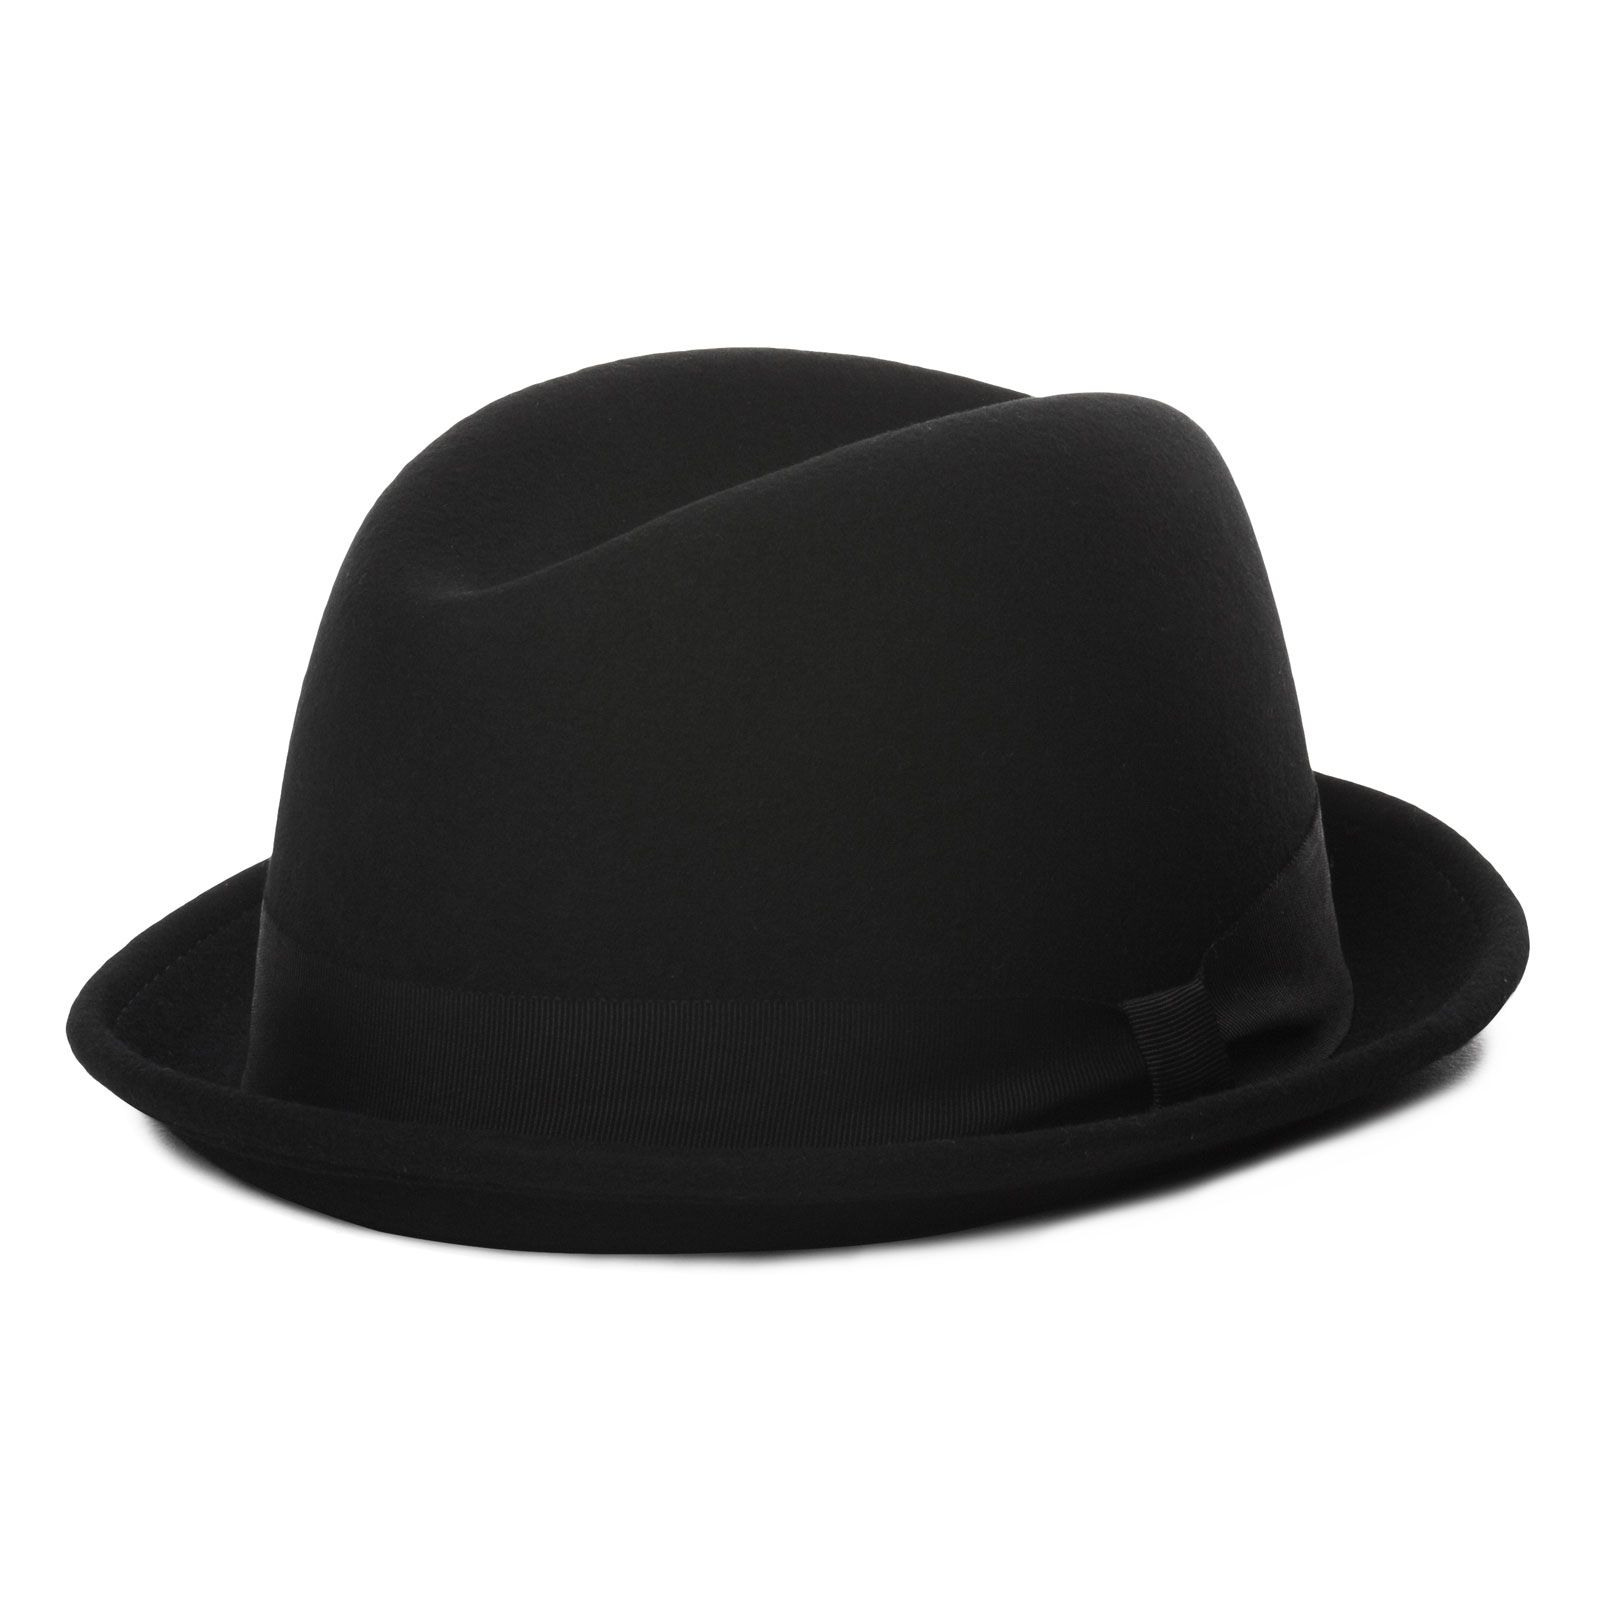 68f29a42851 Men s Hat Rude Boy Hat - Available in Black and Check